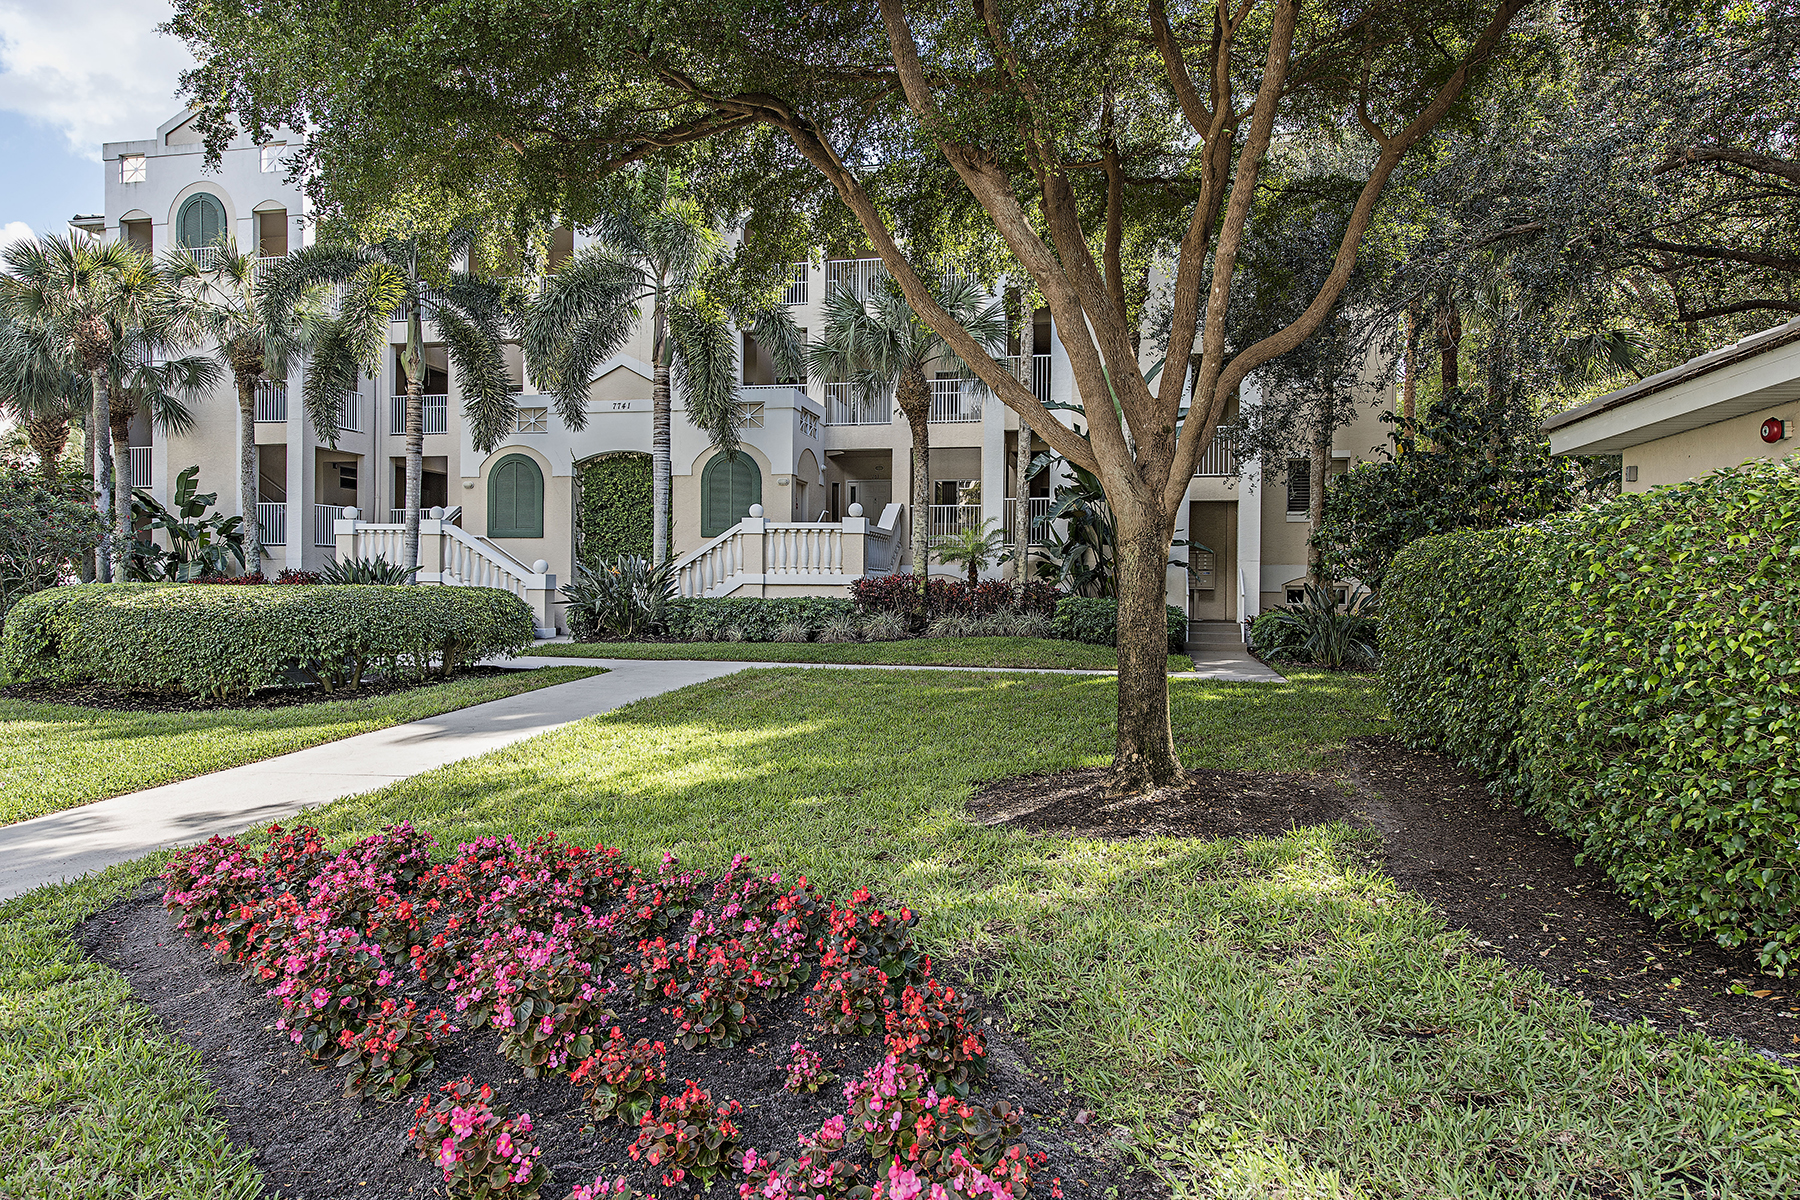 Condominium for Sale at PELICAN BAY - PEBBLE CREEK 7741 Pebble Creek Cir 204 Naples, Florida, 34108 United States